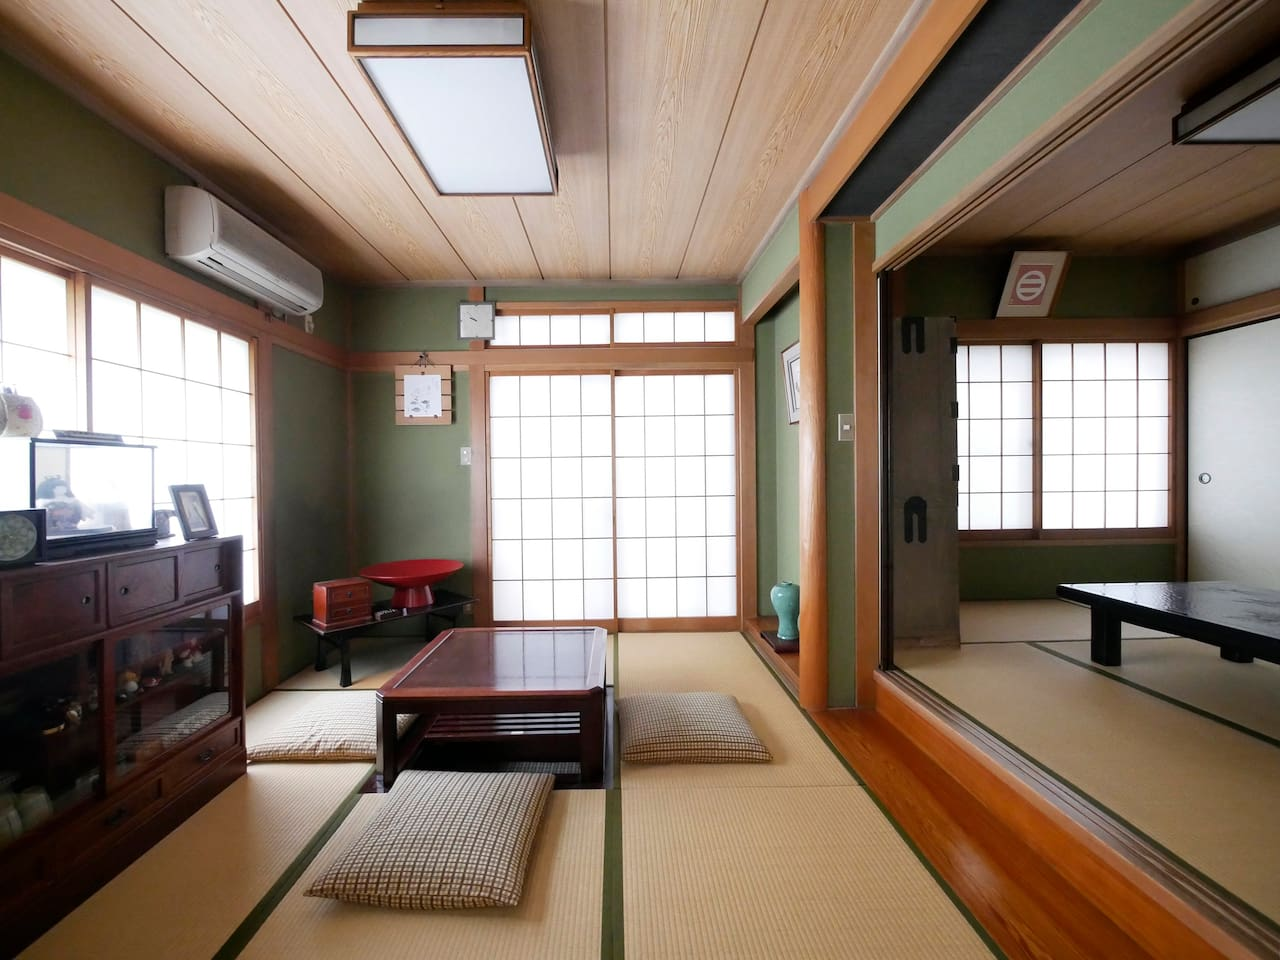 This room like Grand mama's home in Japan